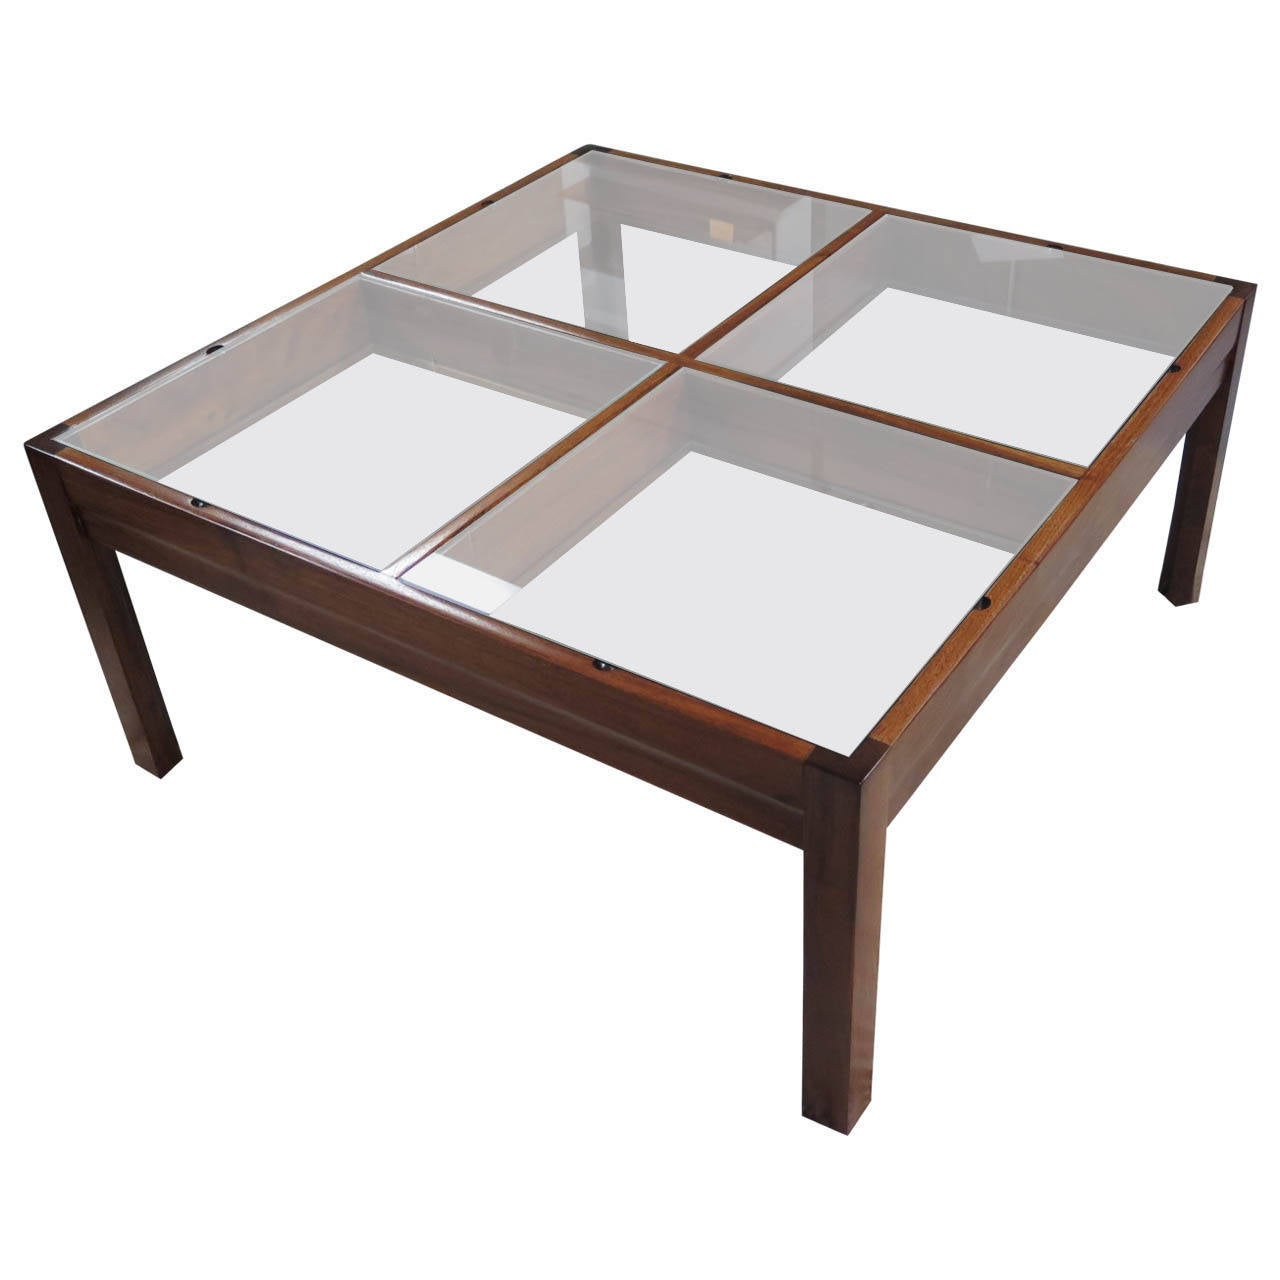 Unusual display coffee table 1960 at 1stdibs for Display coffee table